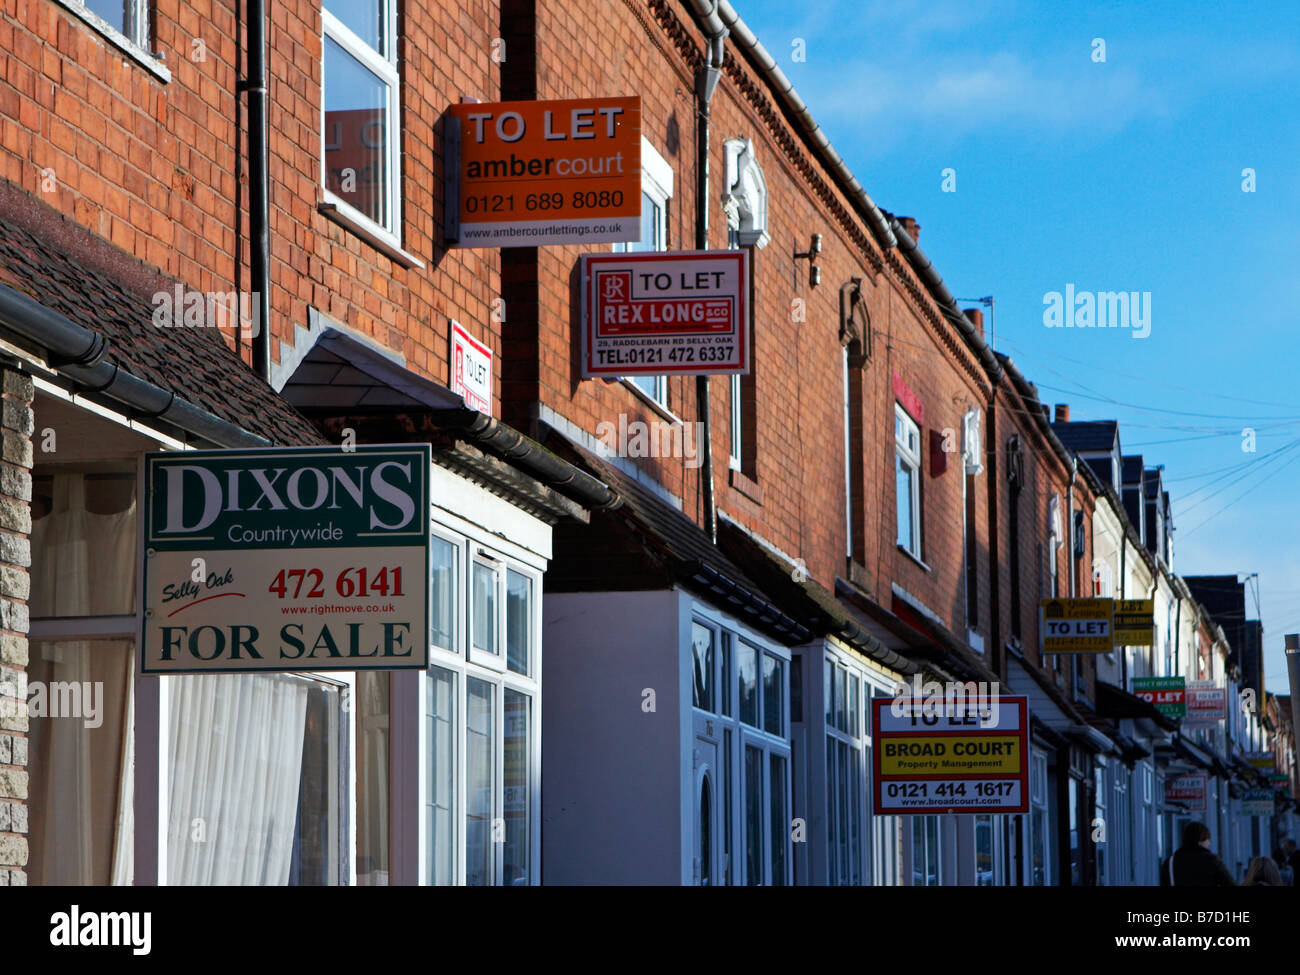 Student accomodation and residention properties for sale and to let in Selly Oak Birmingham UK 20 Jan 2009 - Stock Image